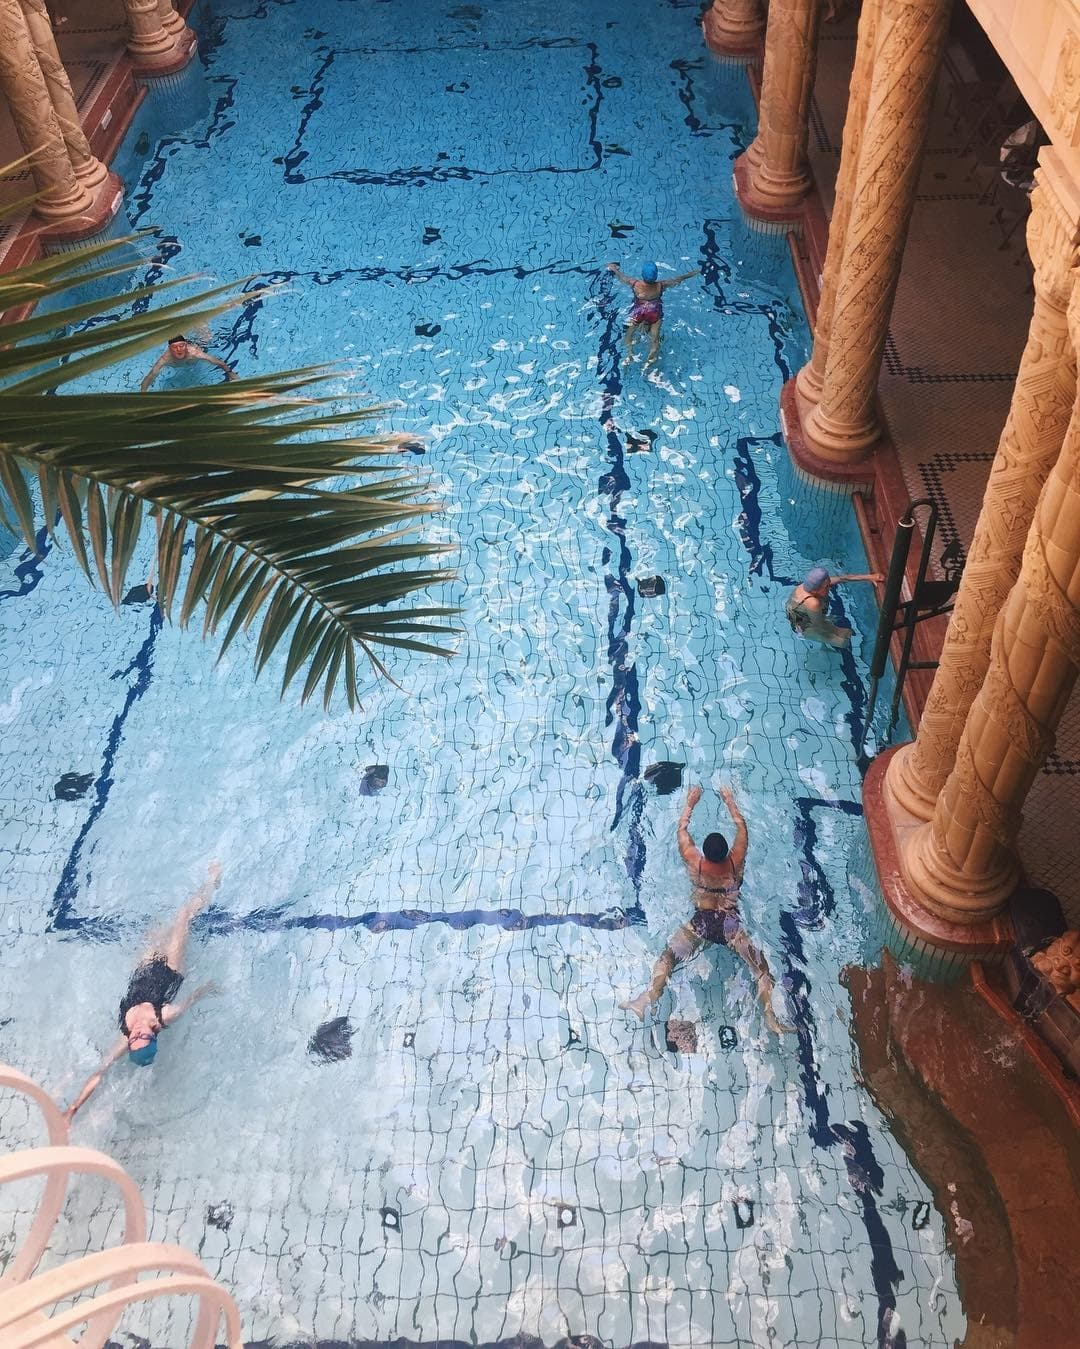 Indoor swimming pool at one of the spas in Budapest.